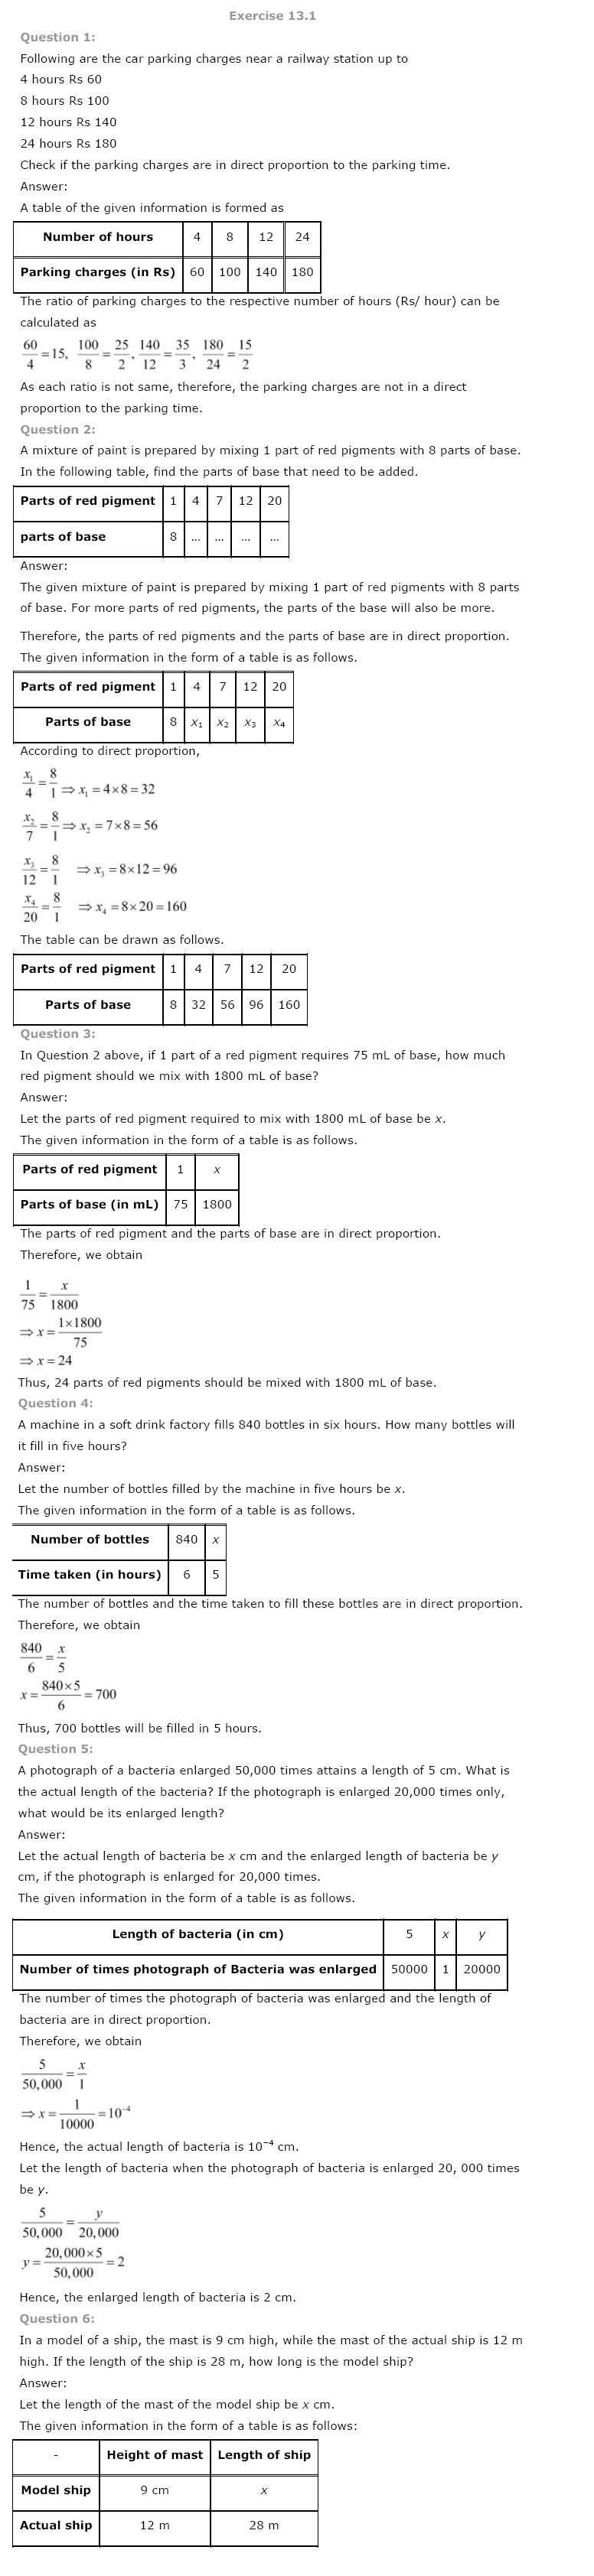 CBSE NCERT Class VIII (8th) | Mathematics, Direct and Inverse Proportions, CBSE NCERT Solved Question Answer, CBSE NCERT Book Solutions for Class 8.